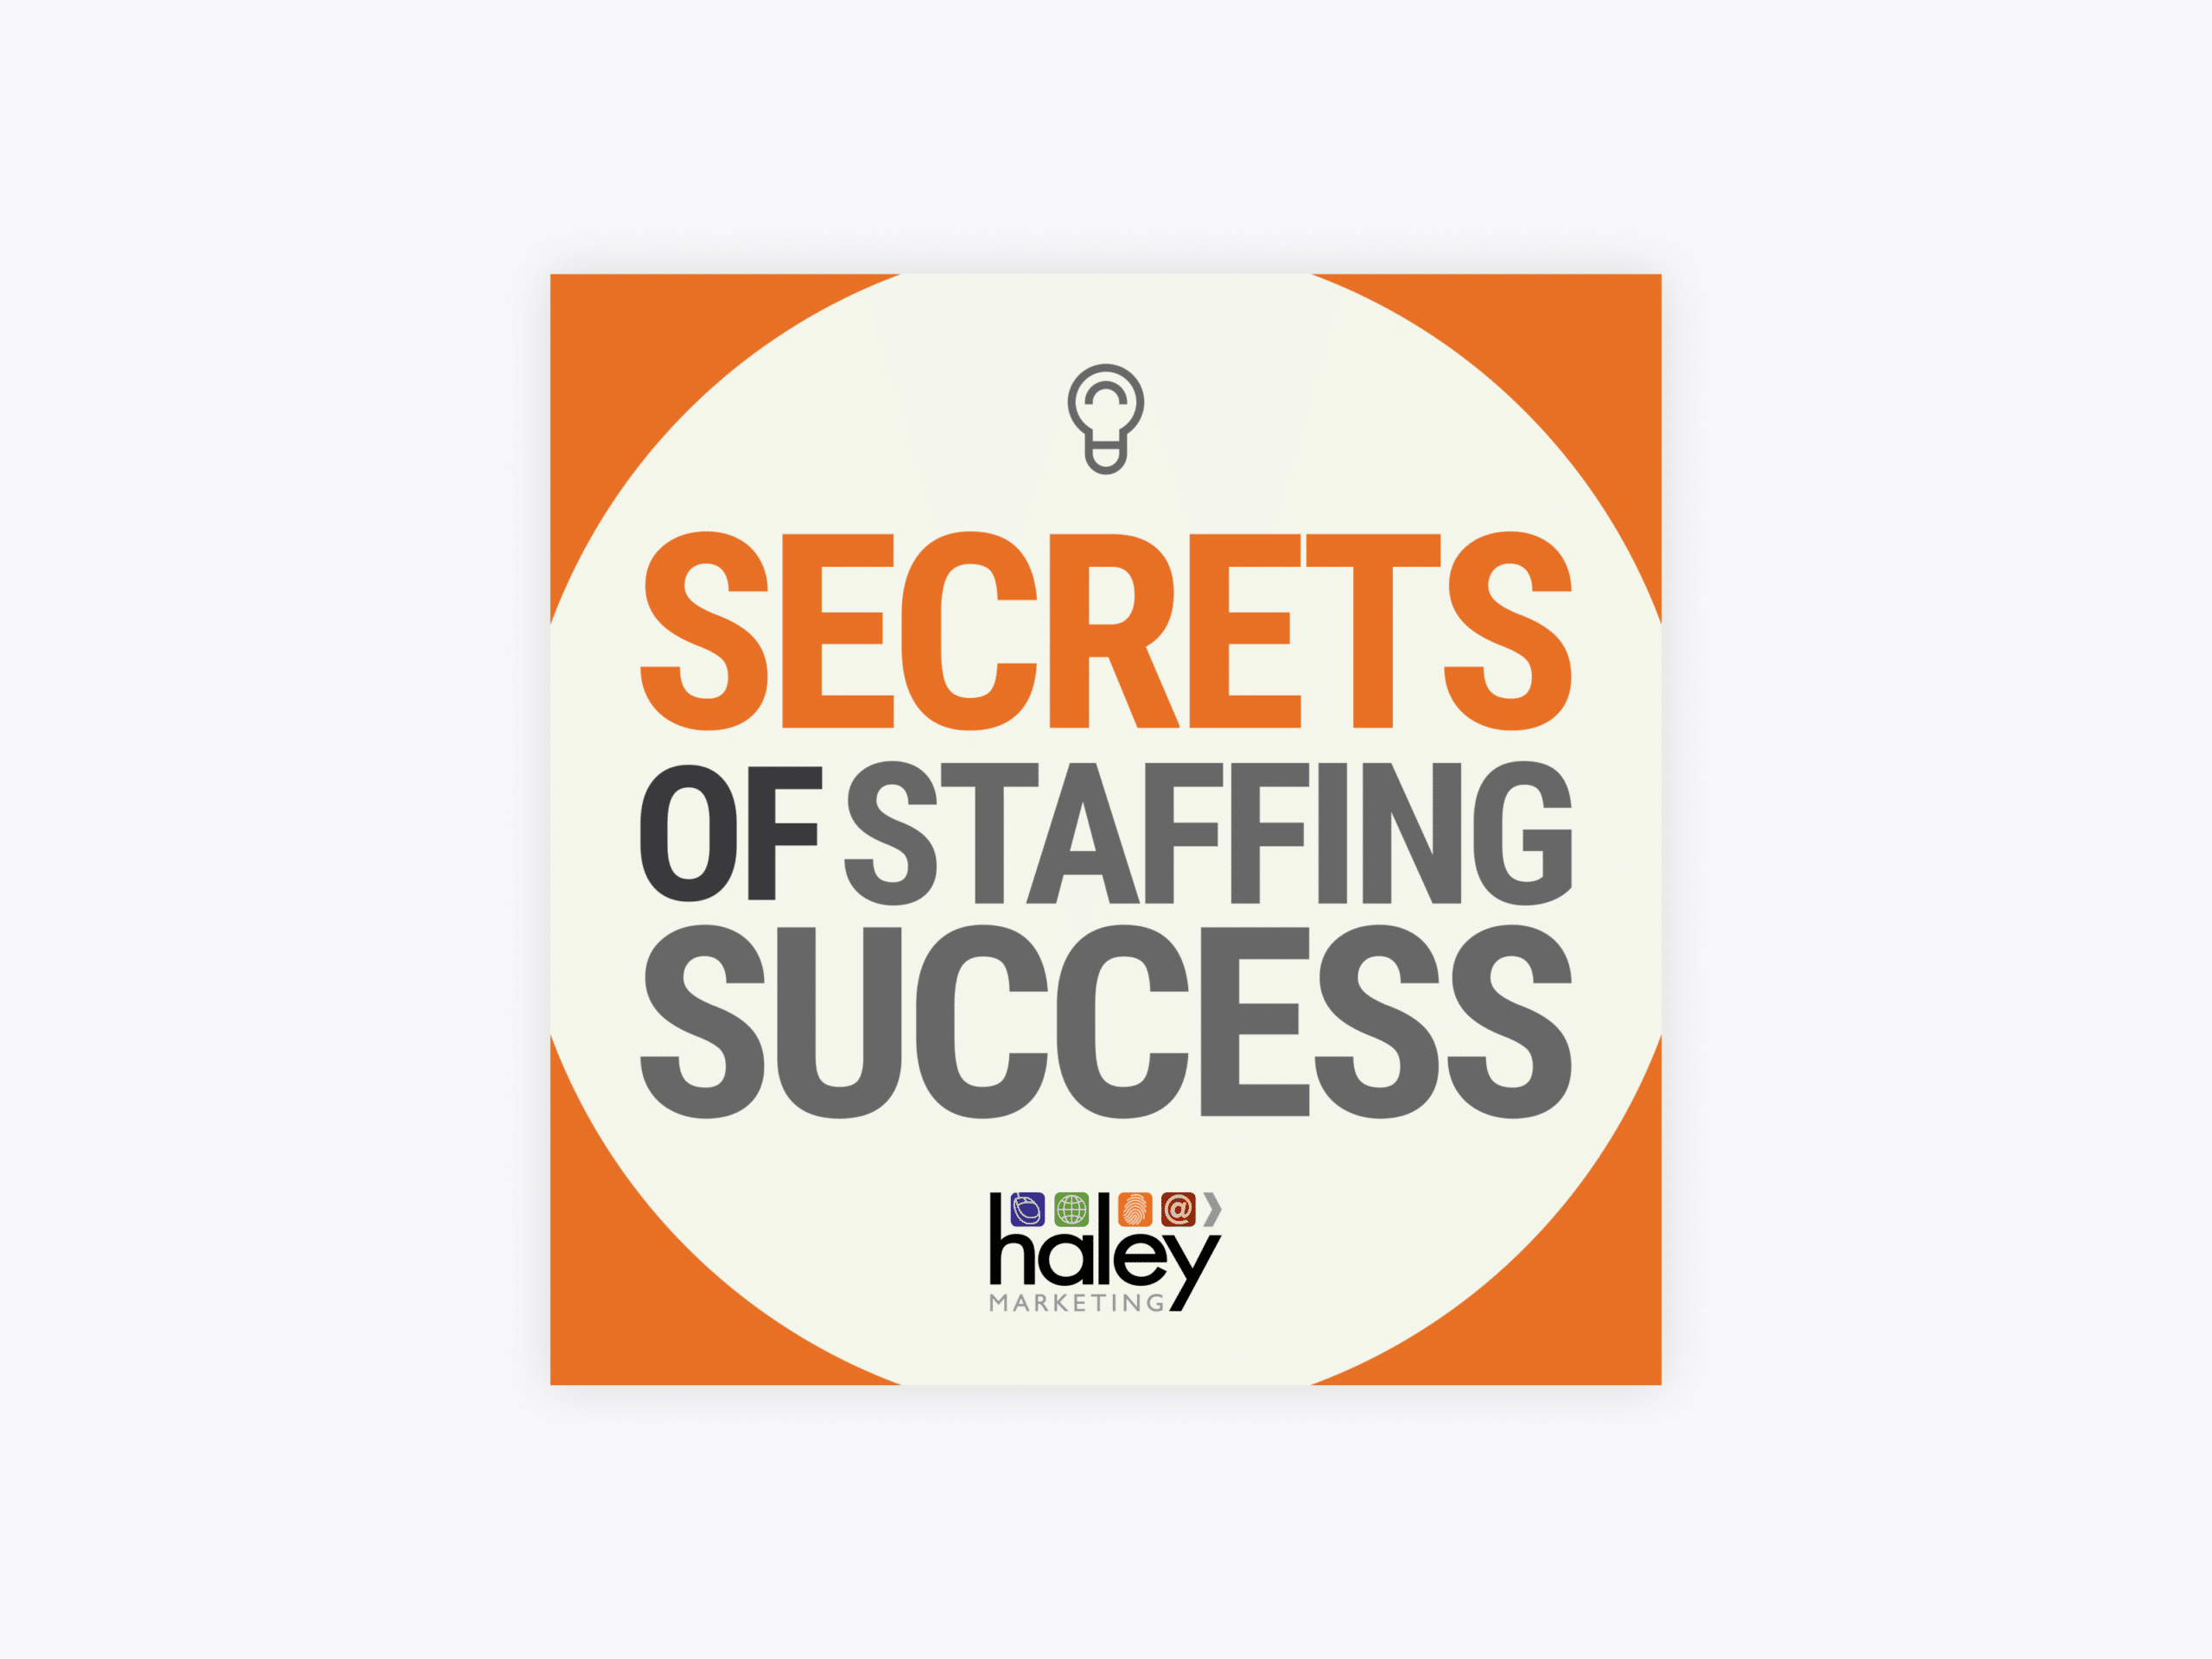 Cover art for secrets of staffing success